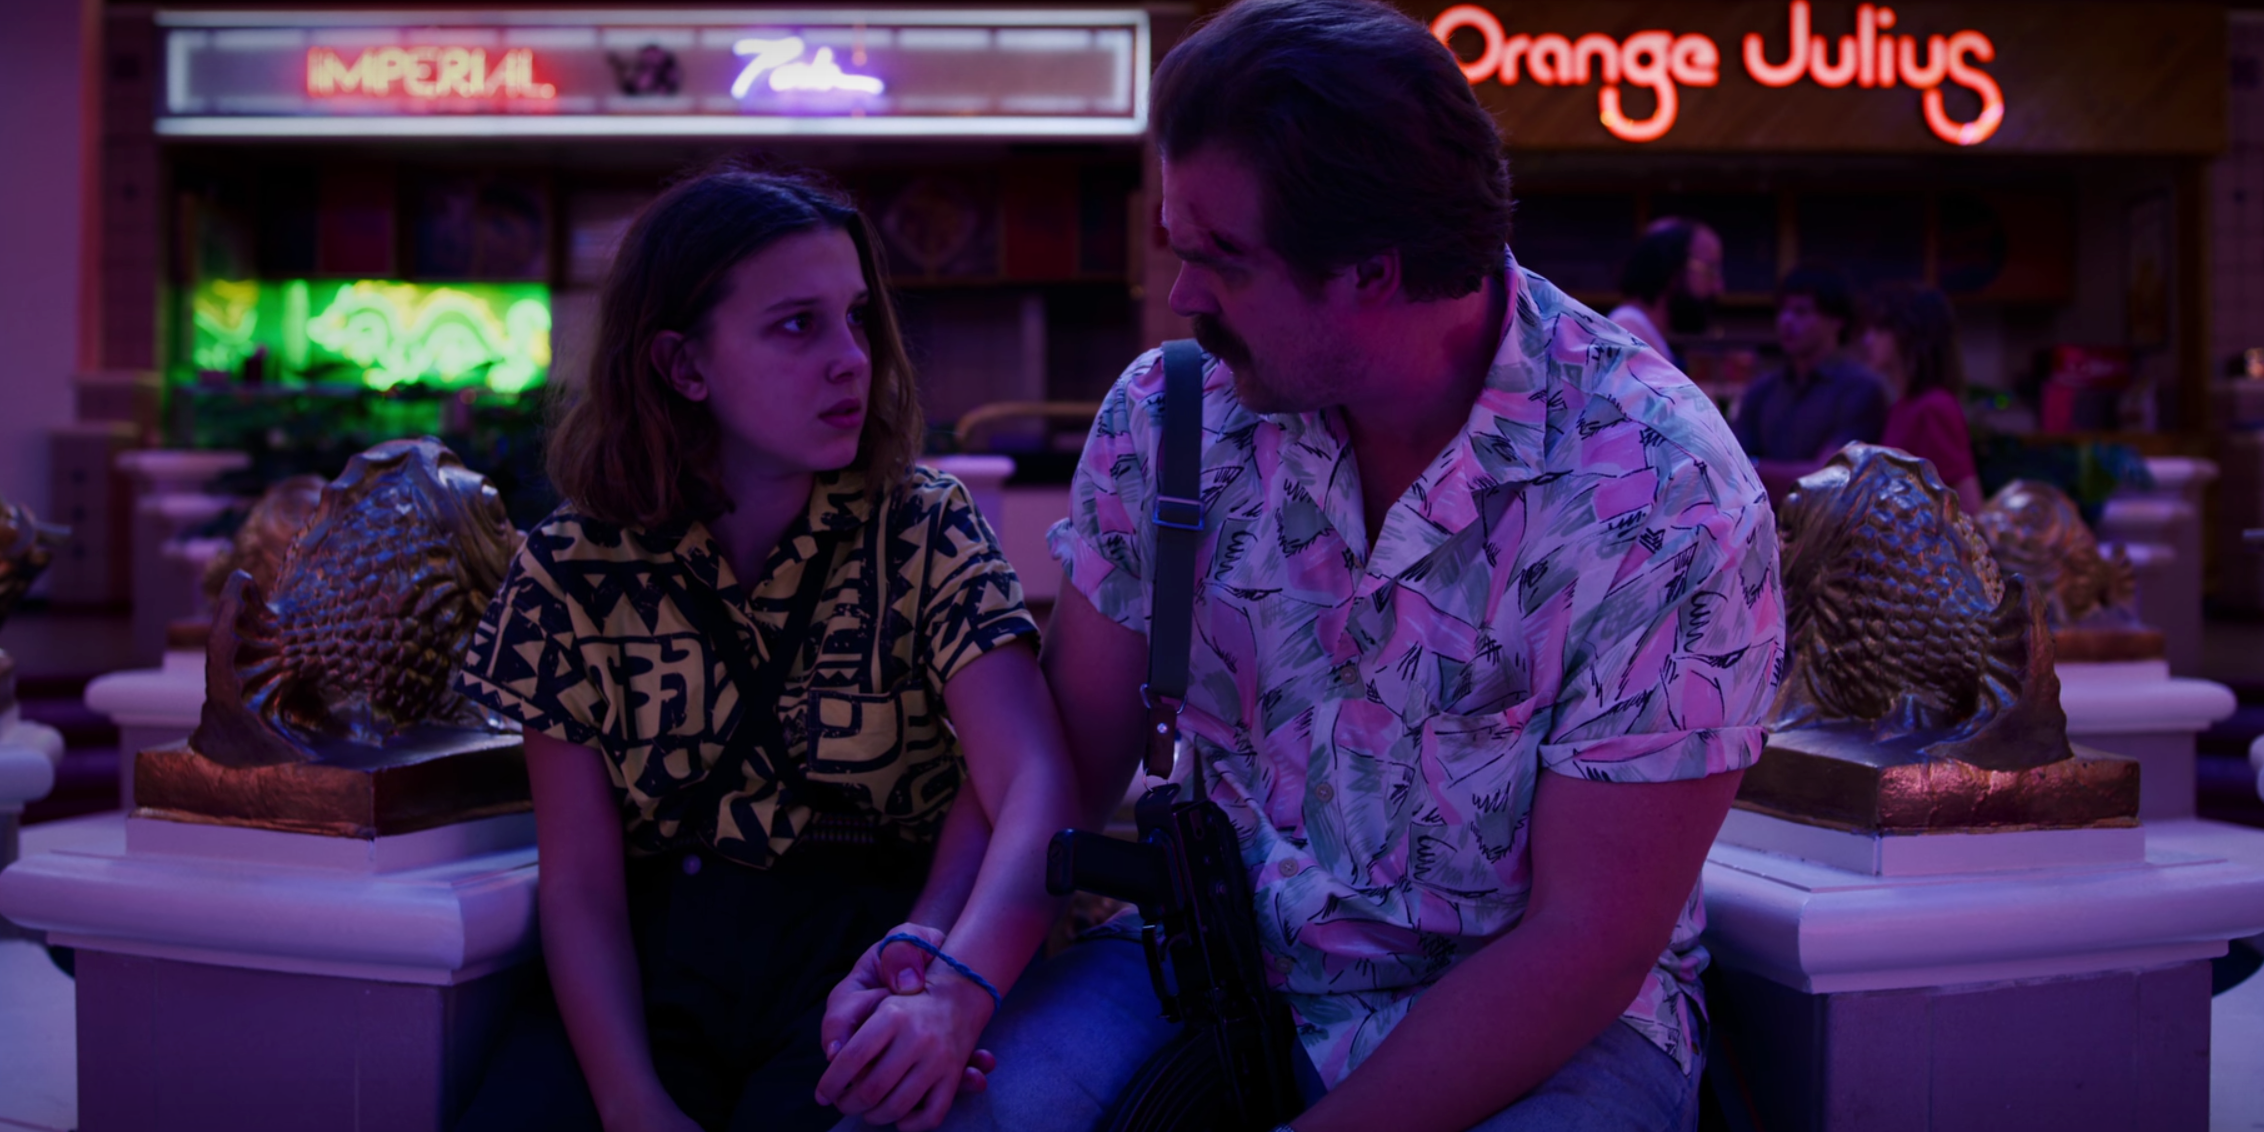 Stranger Things 4 Theories: 5 Big Questions We Have After That